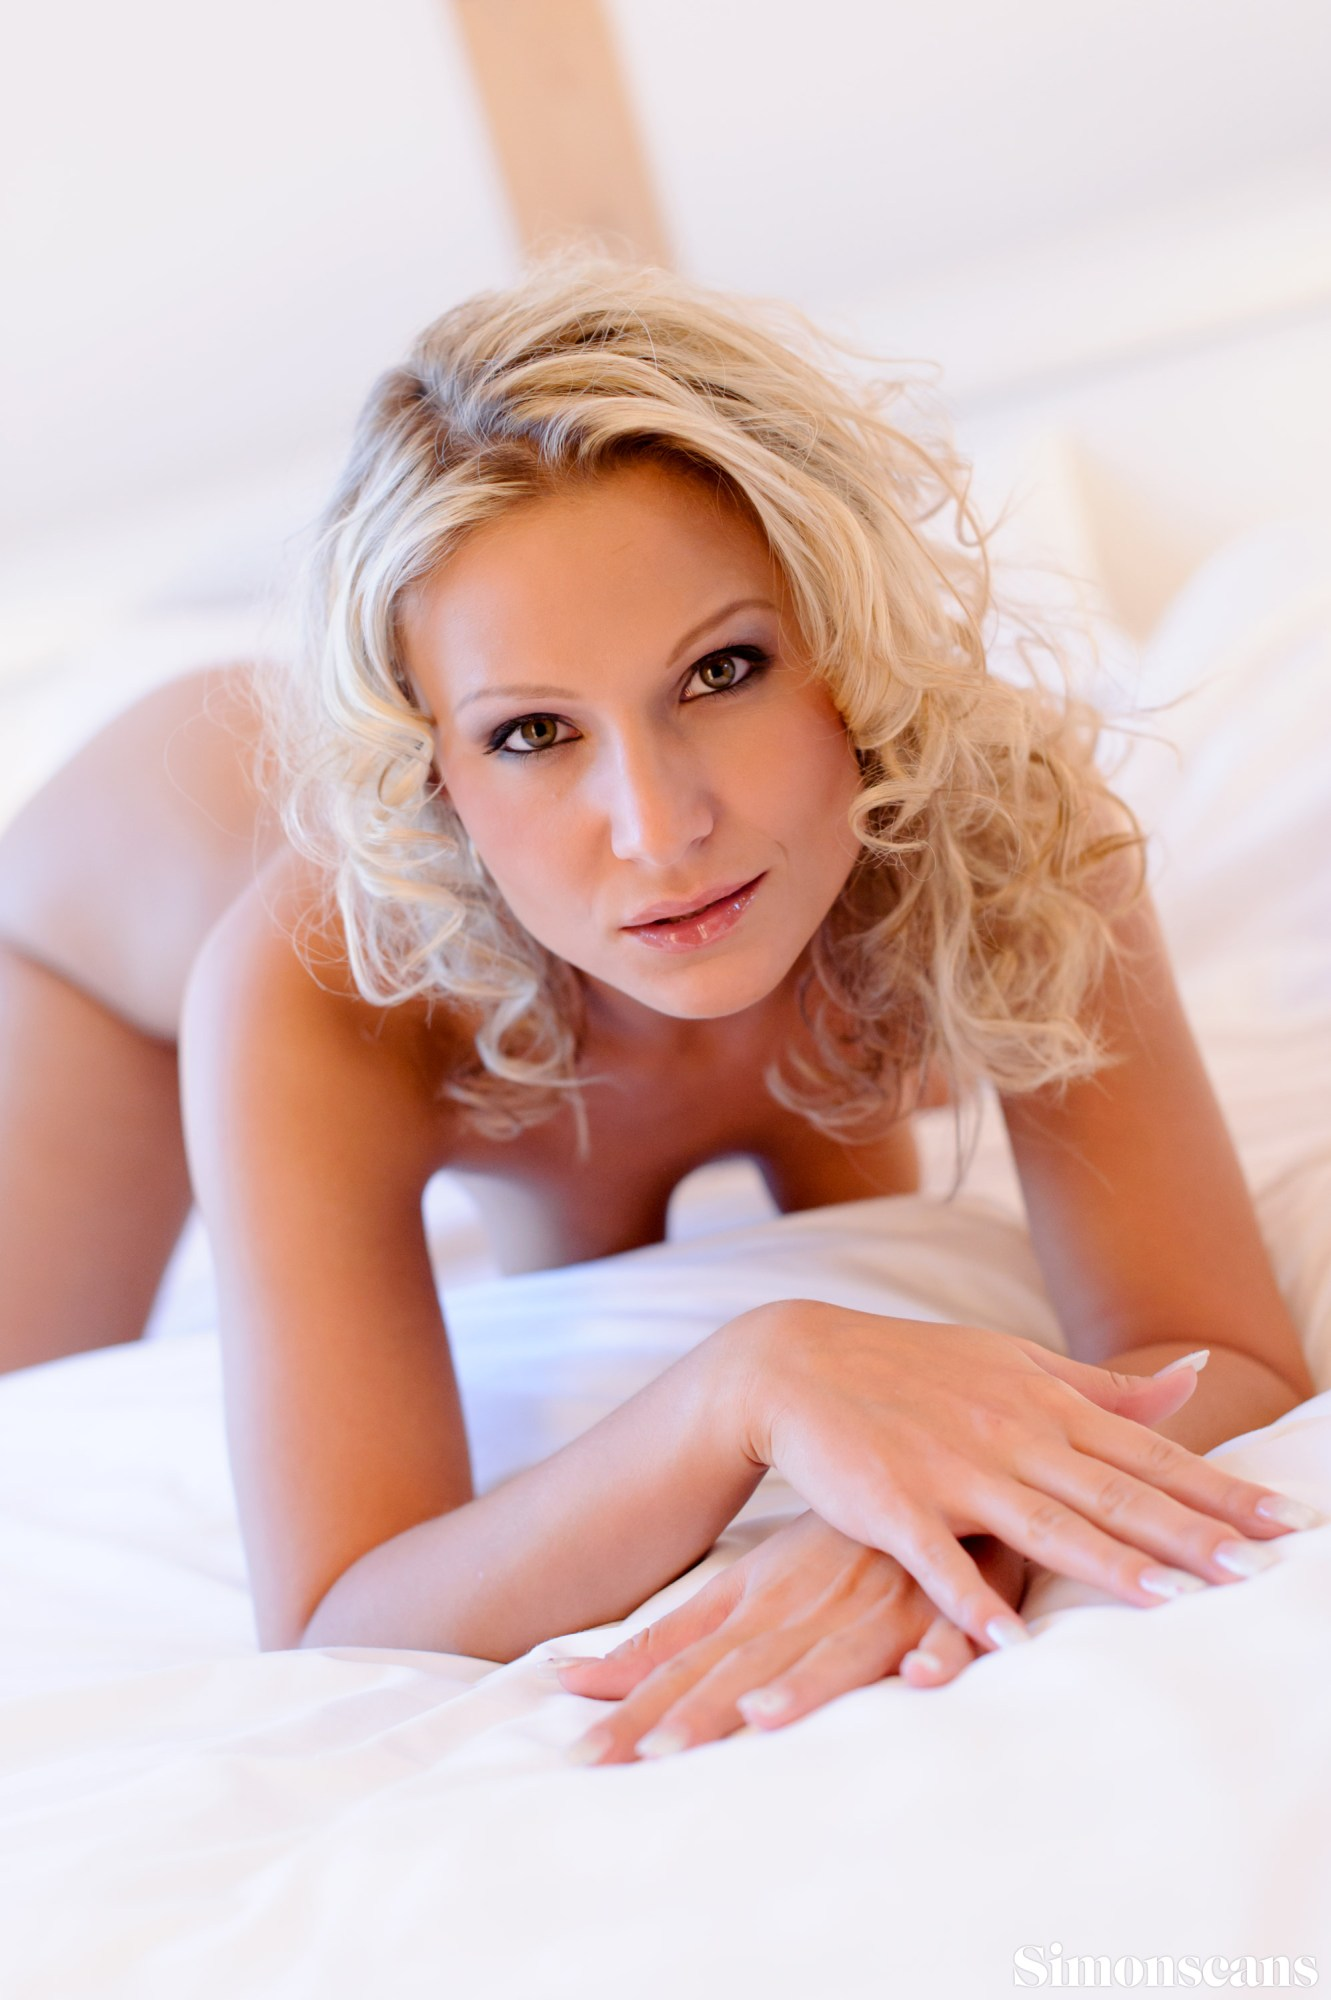 Sam Jolie on white sheets